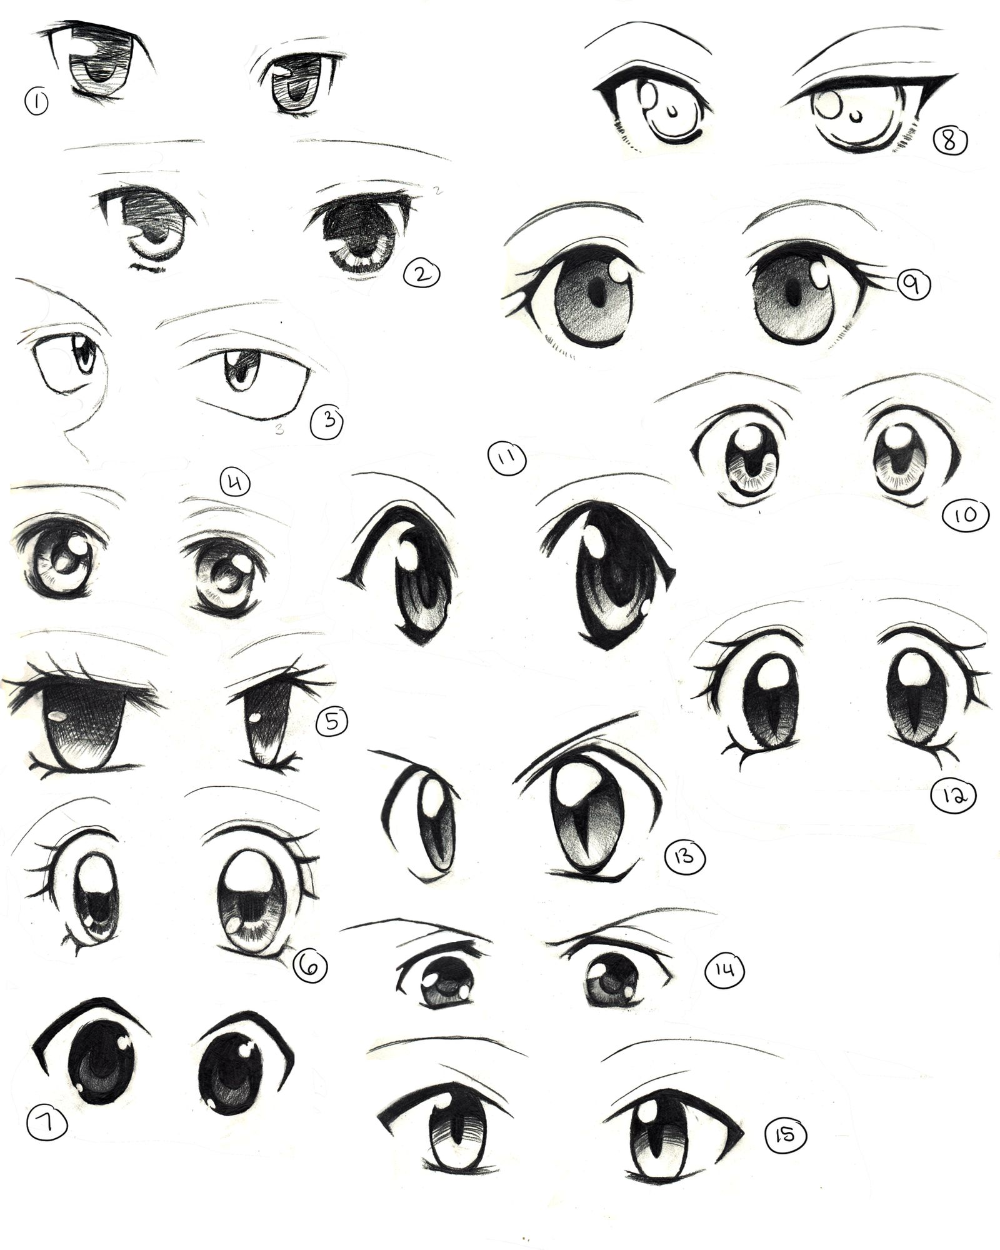 9 Step Drawing Of An Anime Male Eye How To Draw Anime Eyes Anime Eye Drawing Guy Drawing